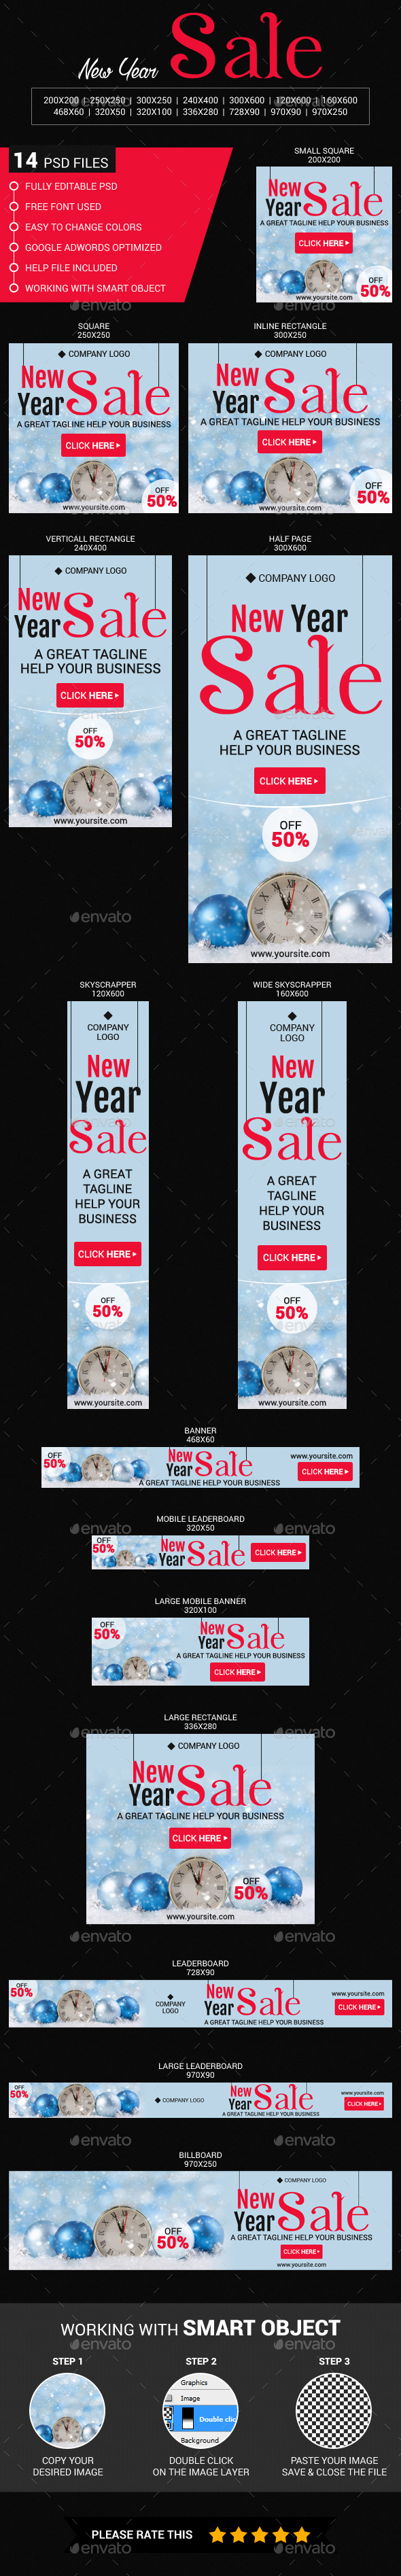 New Year Sale - Banners & Ads Web Elements